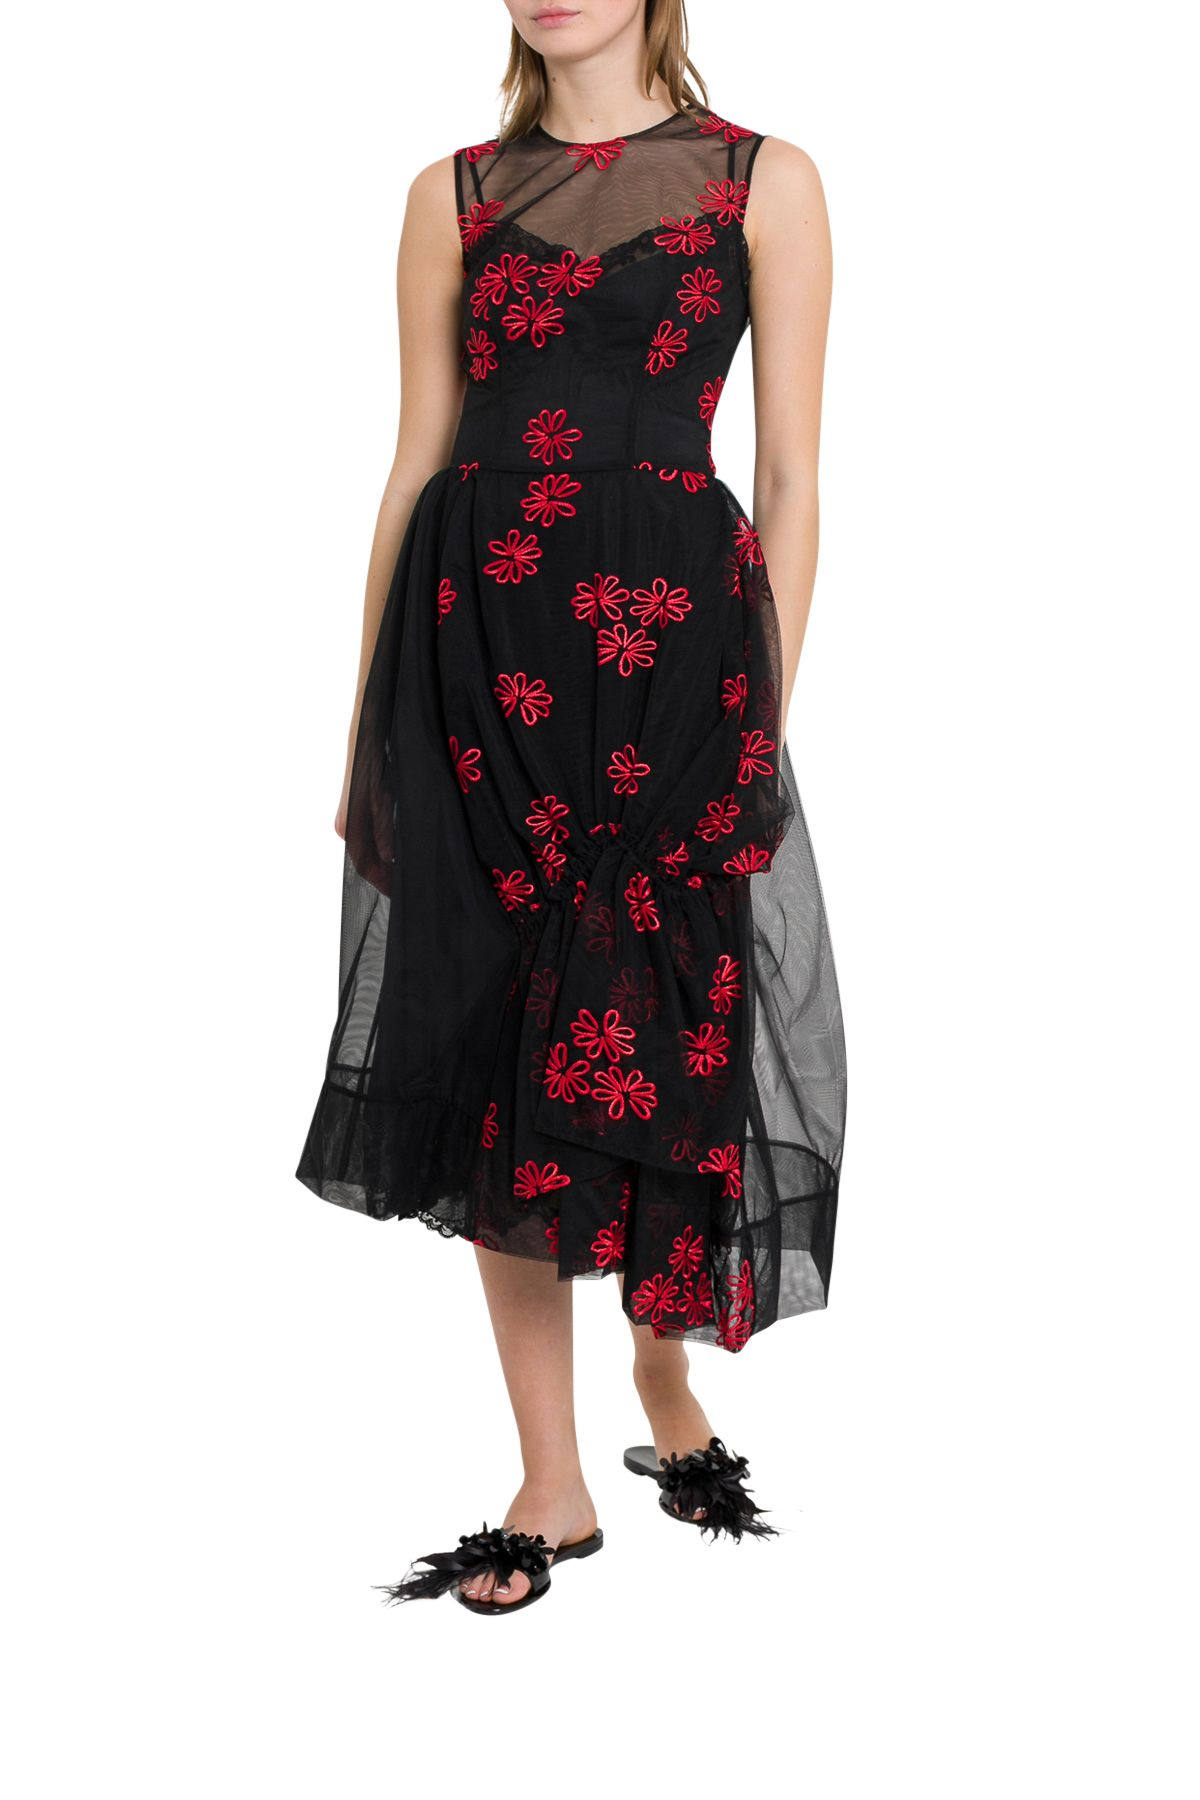 Simone Rocha Dresses FLORAL-EMBROIDERED TULLE DRESS